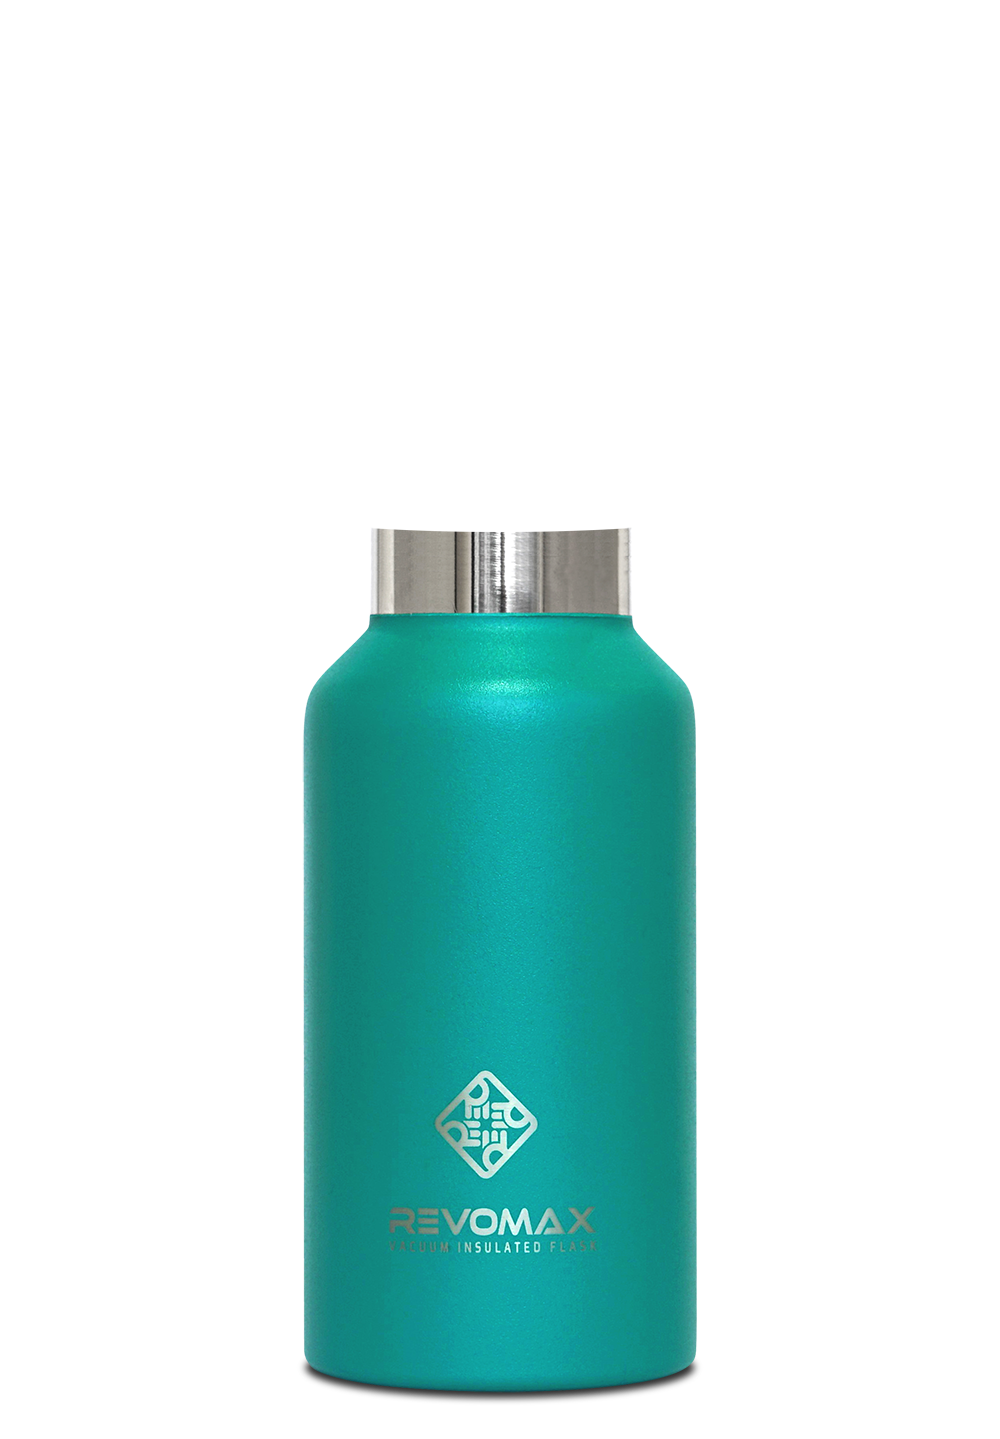 Shades drawing bottle. Vacuum insulated thermos flasks